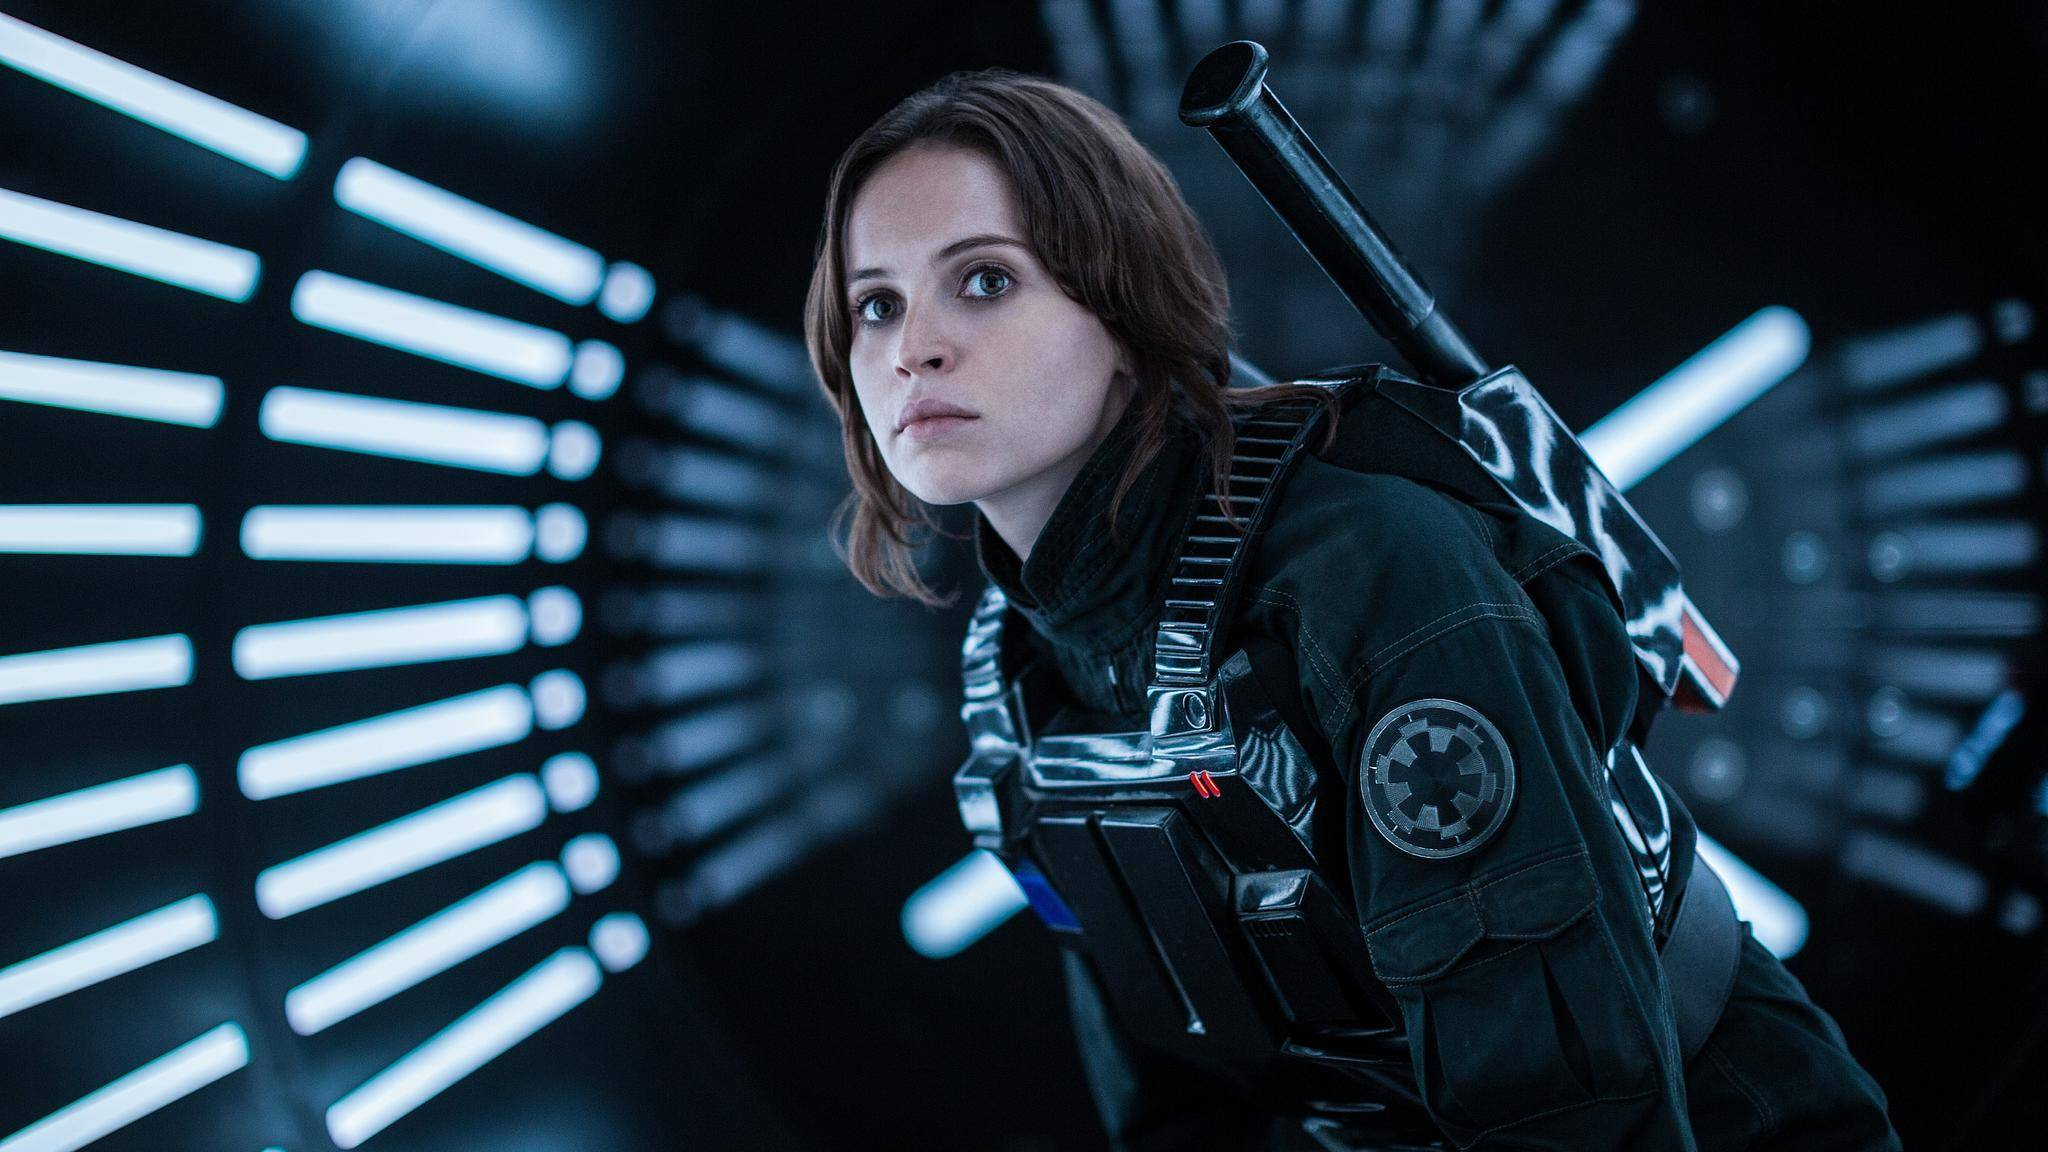 Rogue One: A Star Wars Story _ Jyn Erso (Felicity Jones)